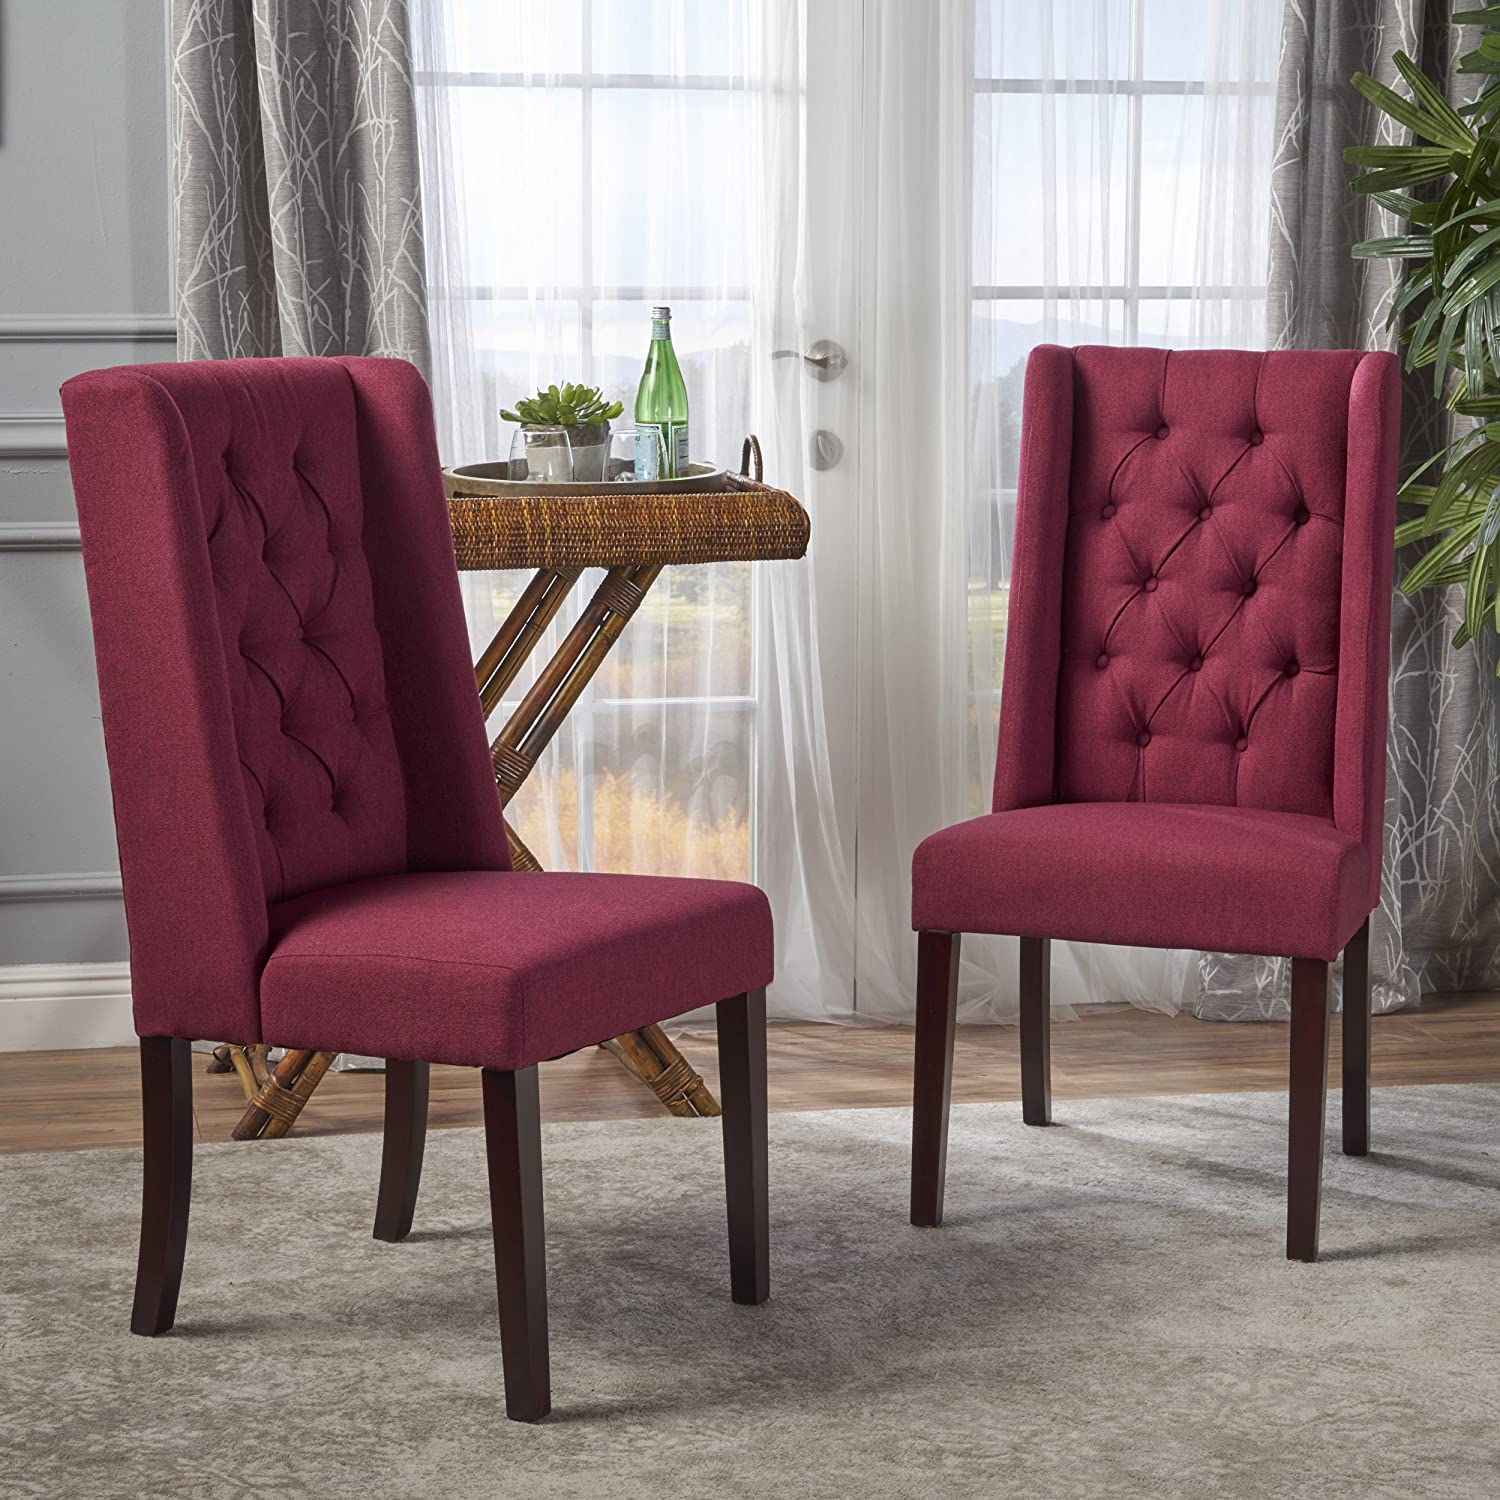 Christopher Knight Home Blythe Tufted Fabric Dining Chairs Set of 2 , Deep Red and Brown